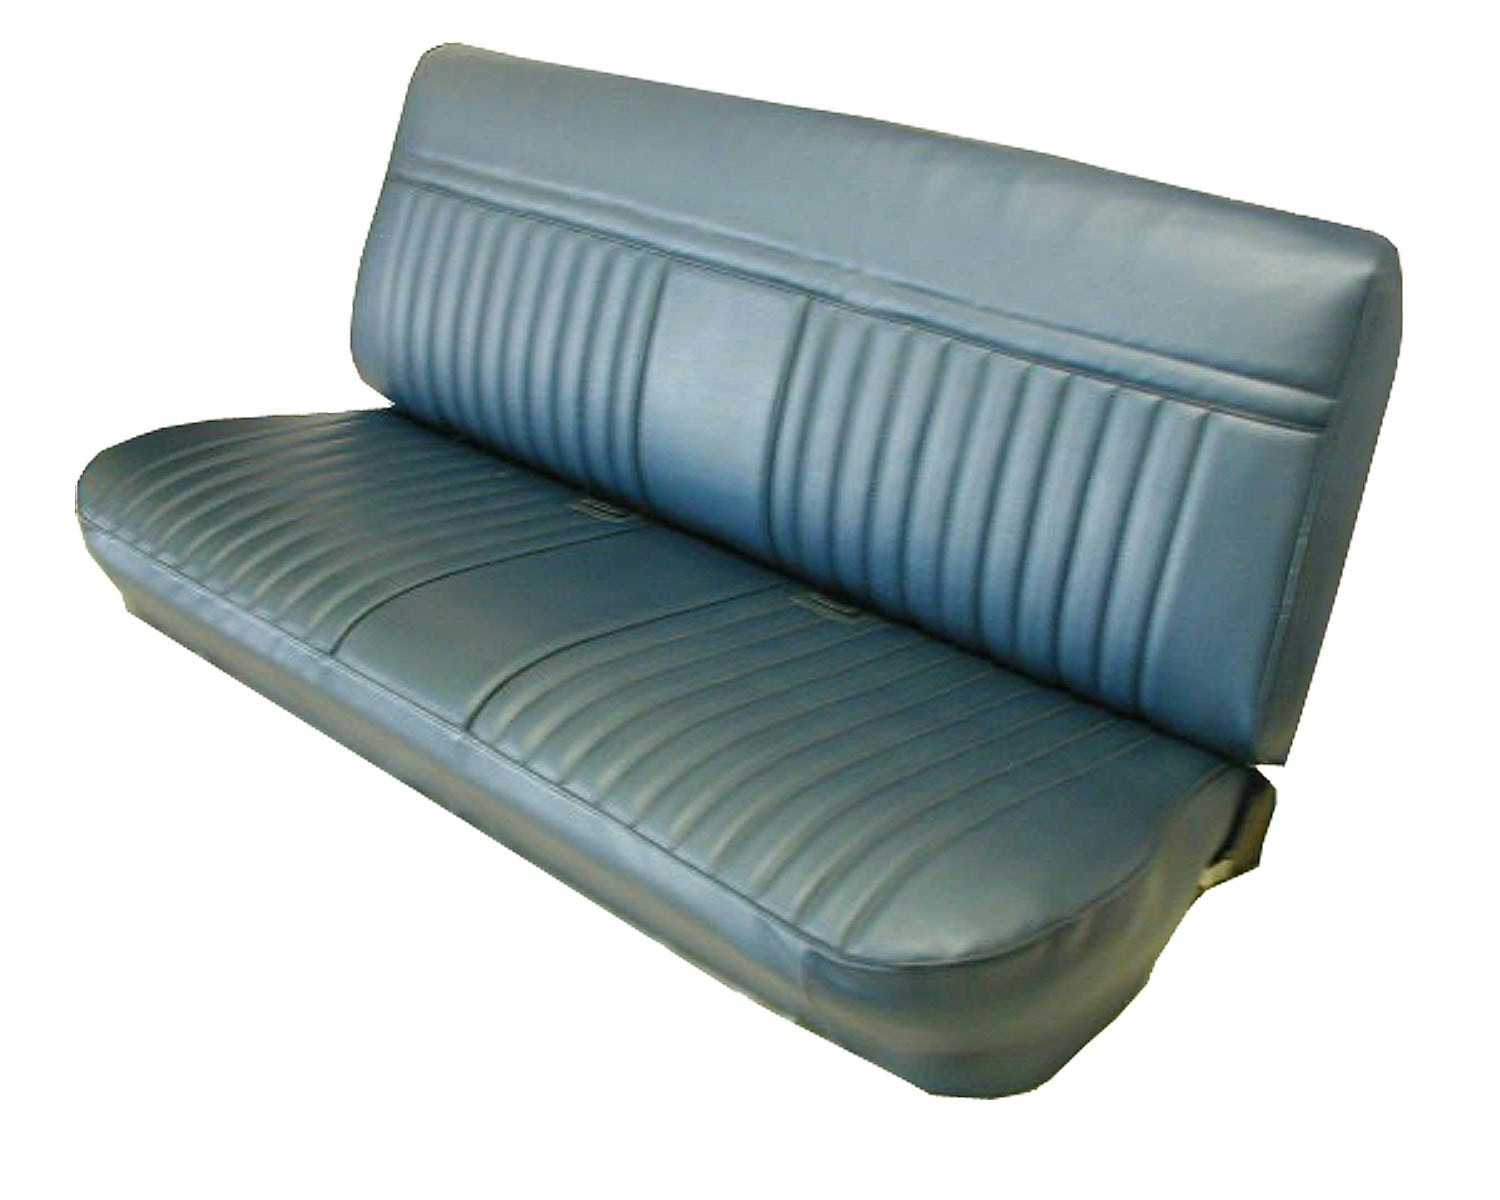 Very Impressive portraiture of 1981 1987 Chevrolet/GMC Standard Cab/Crew Cab Pickup Front Bench Seat with #314F5C color and 1500x1200 pixels